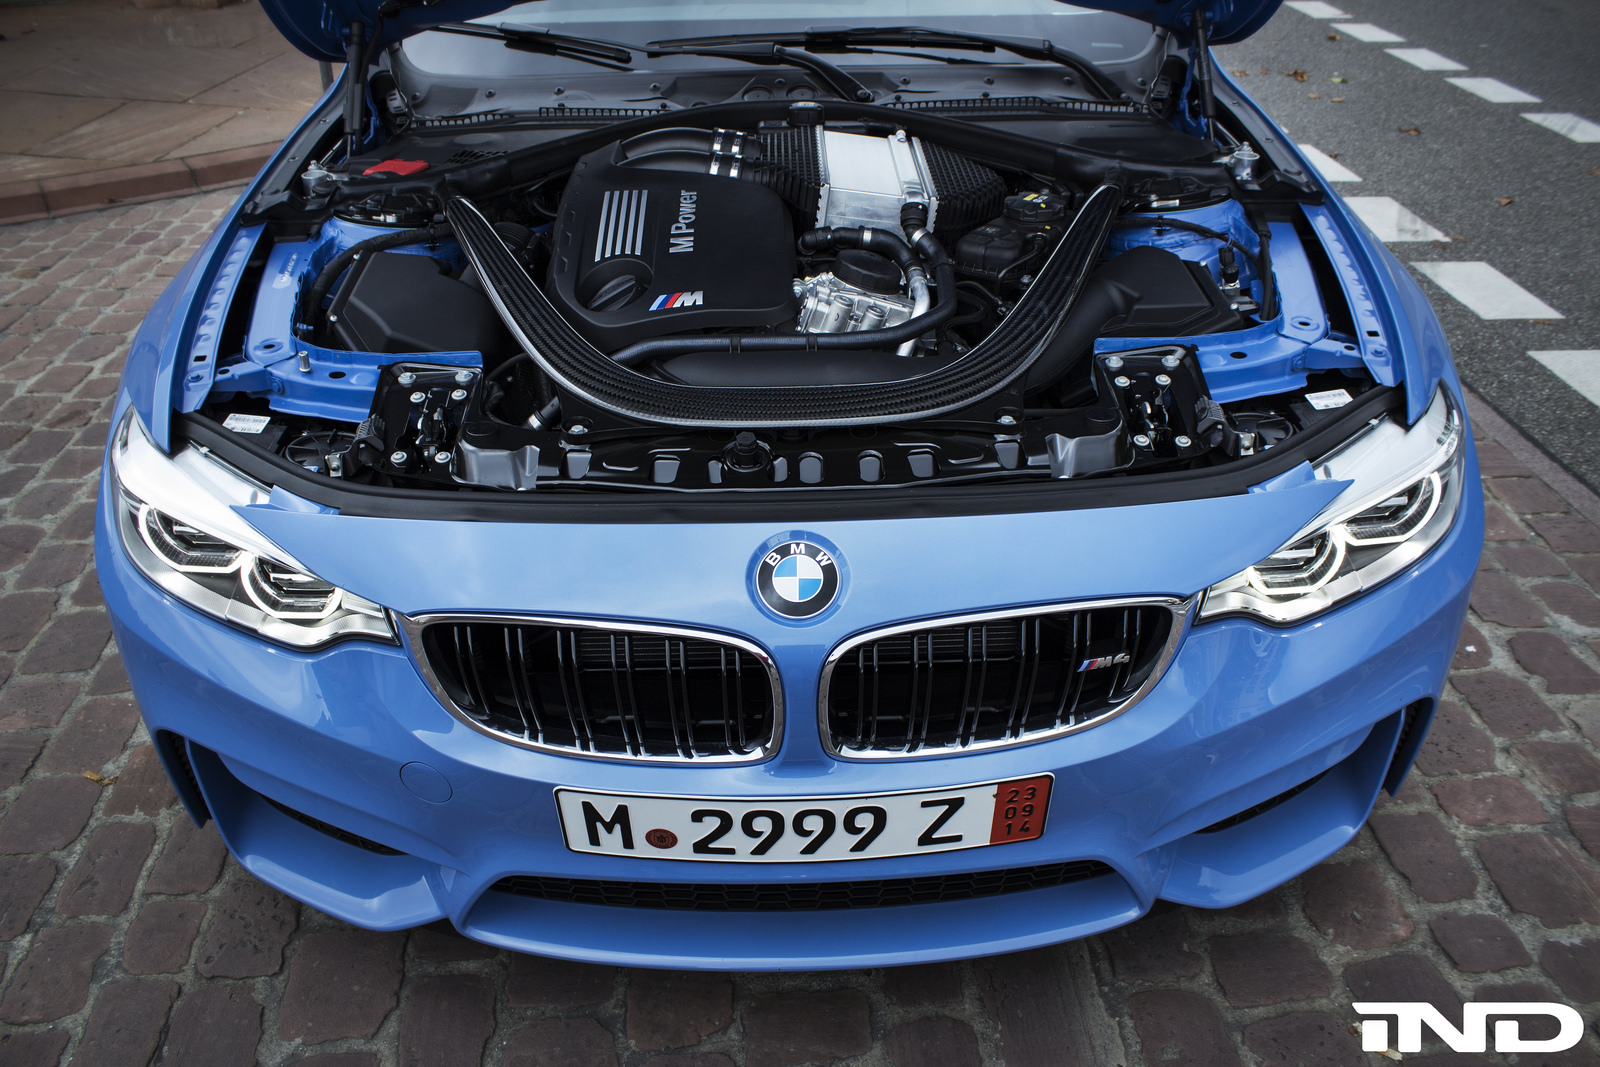 Aftermarket Exhaust System For BMW F8X 14